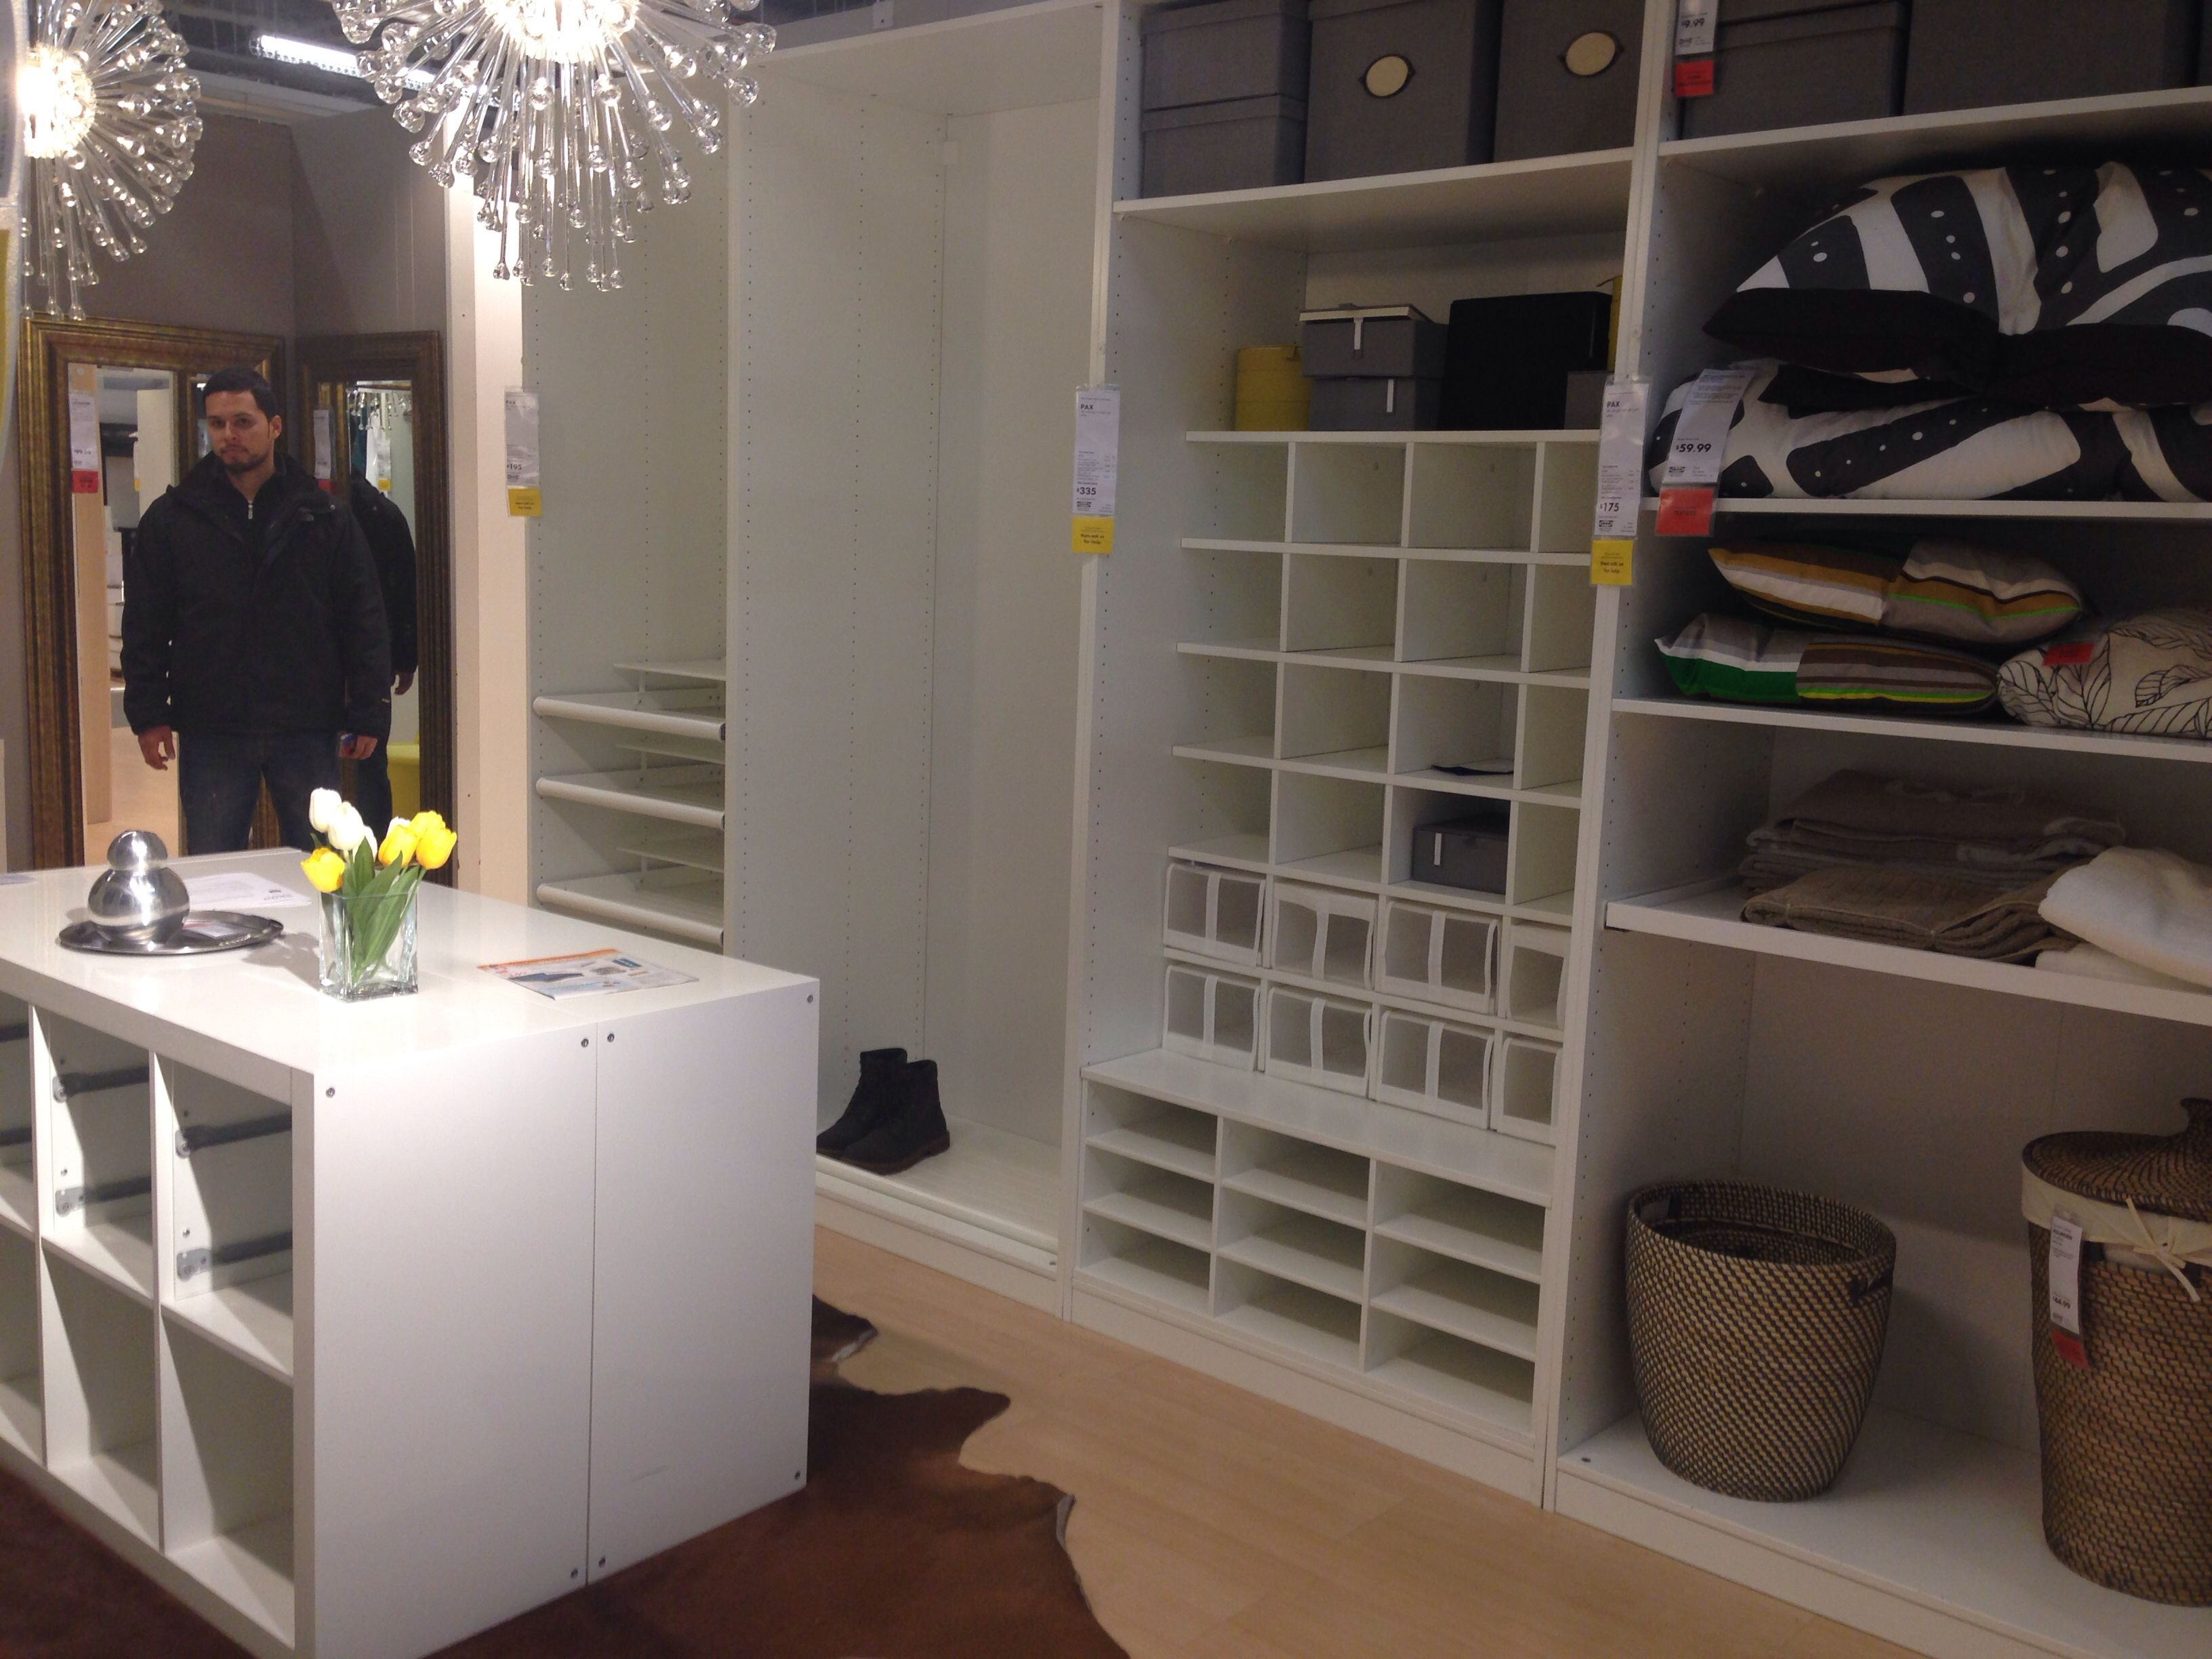 Ikea Fyndig Küche Maße Ikea Ideas For Walk In Closet Nazarm